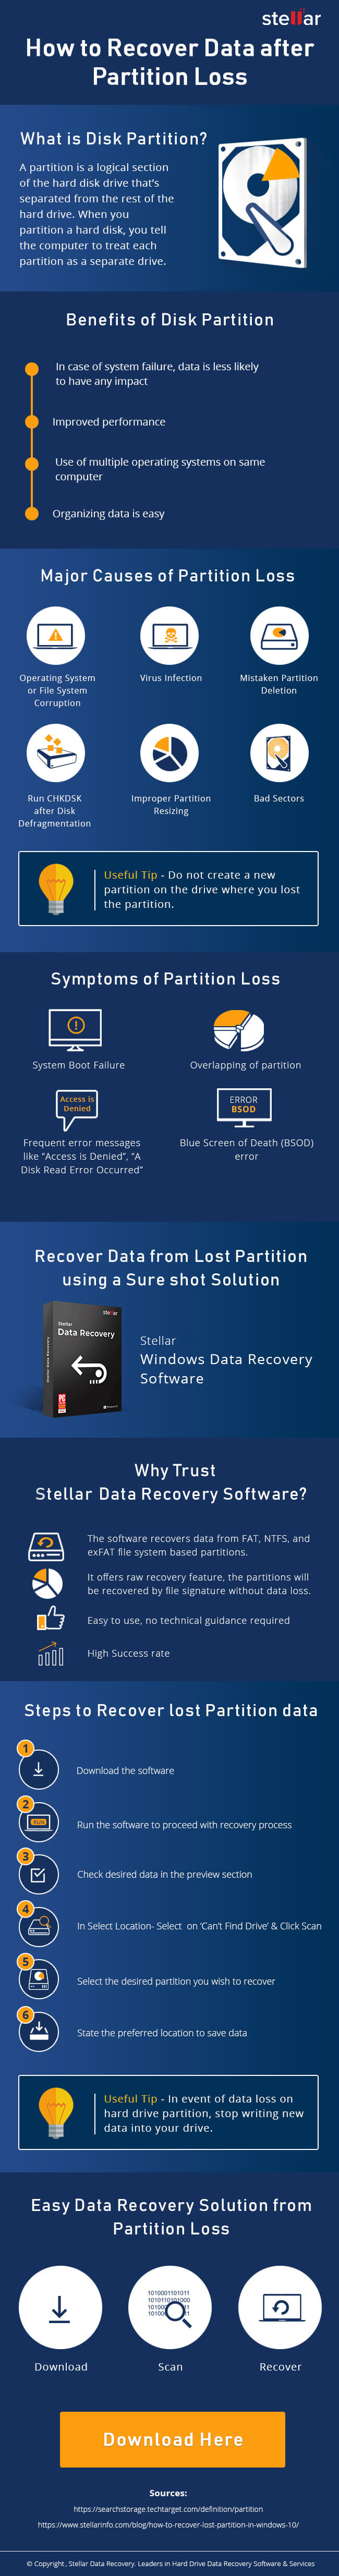 How to Recover Data from Deleted Partition